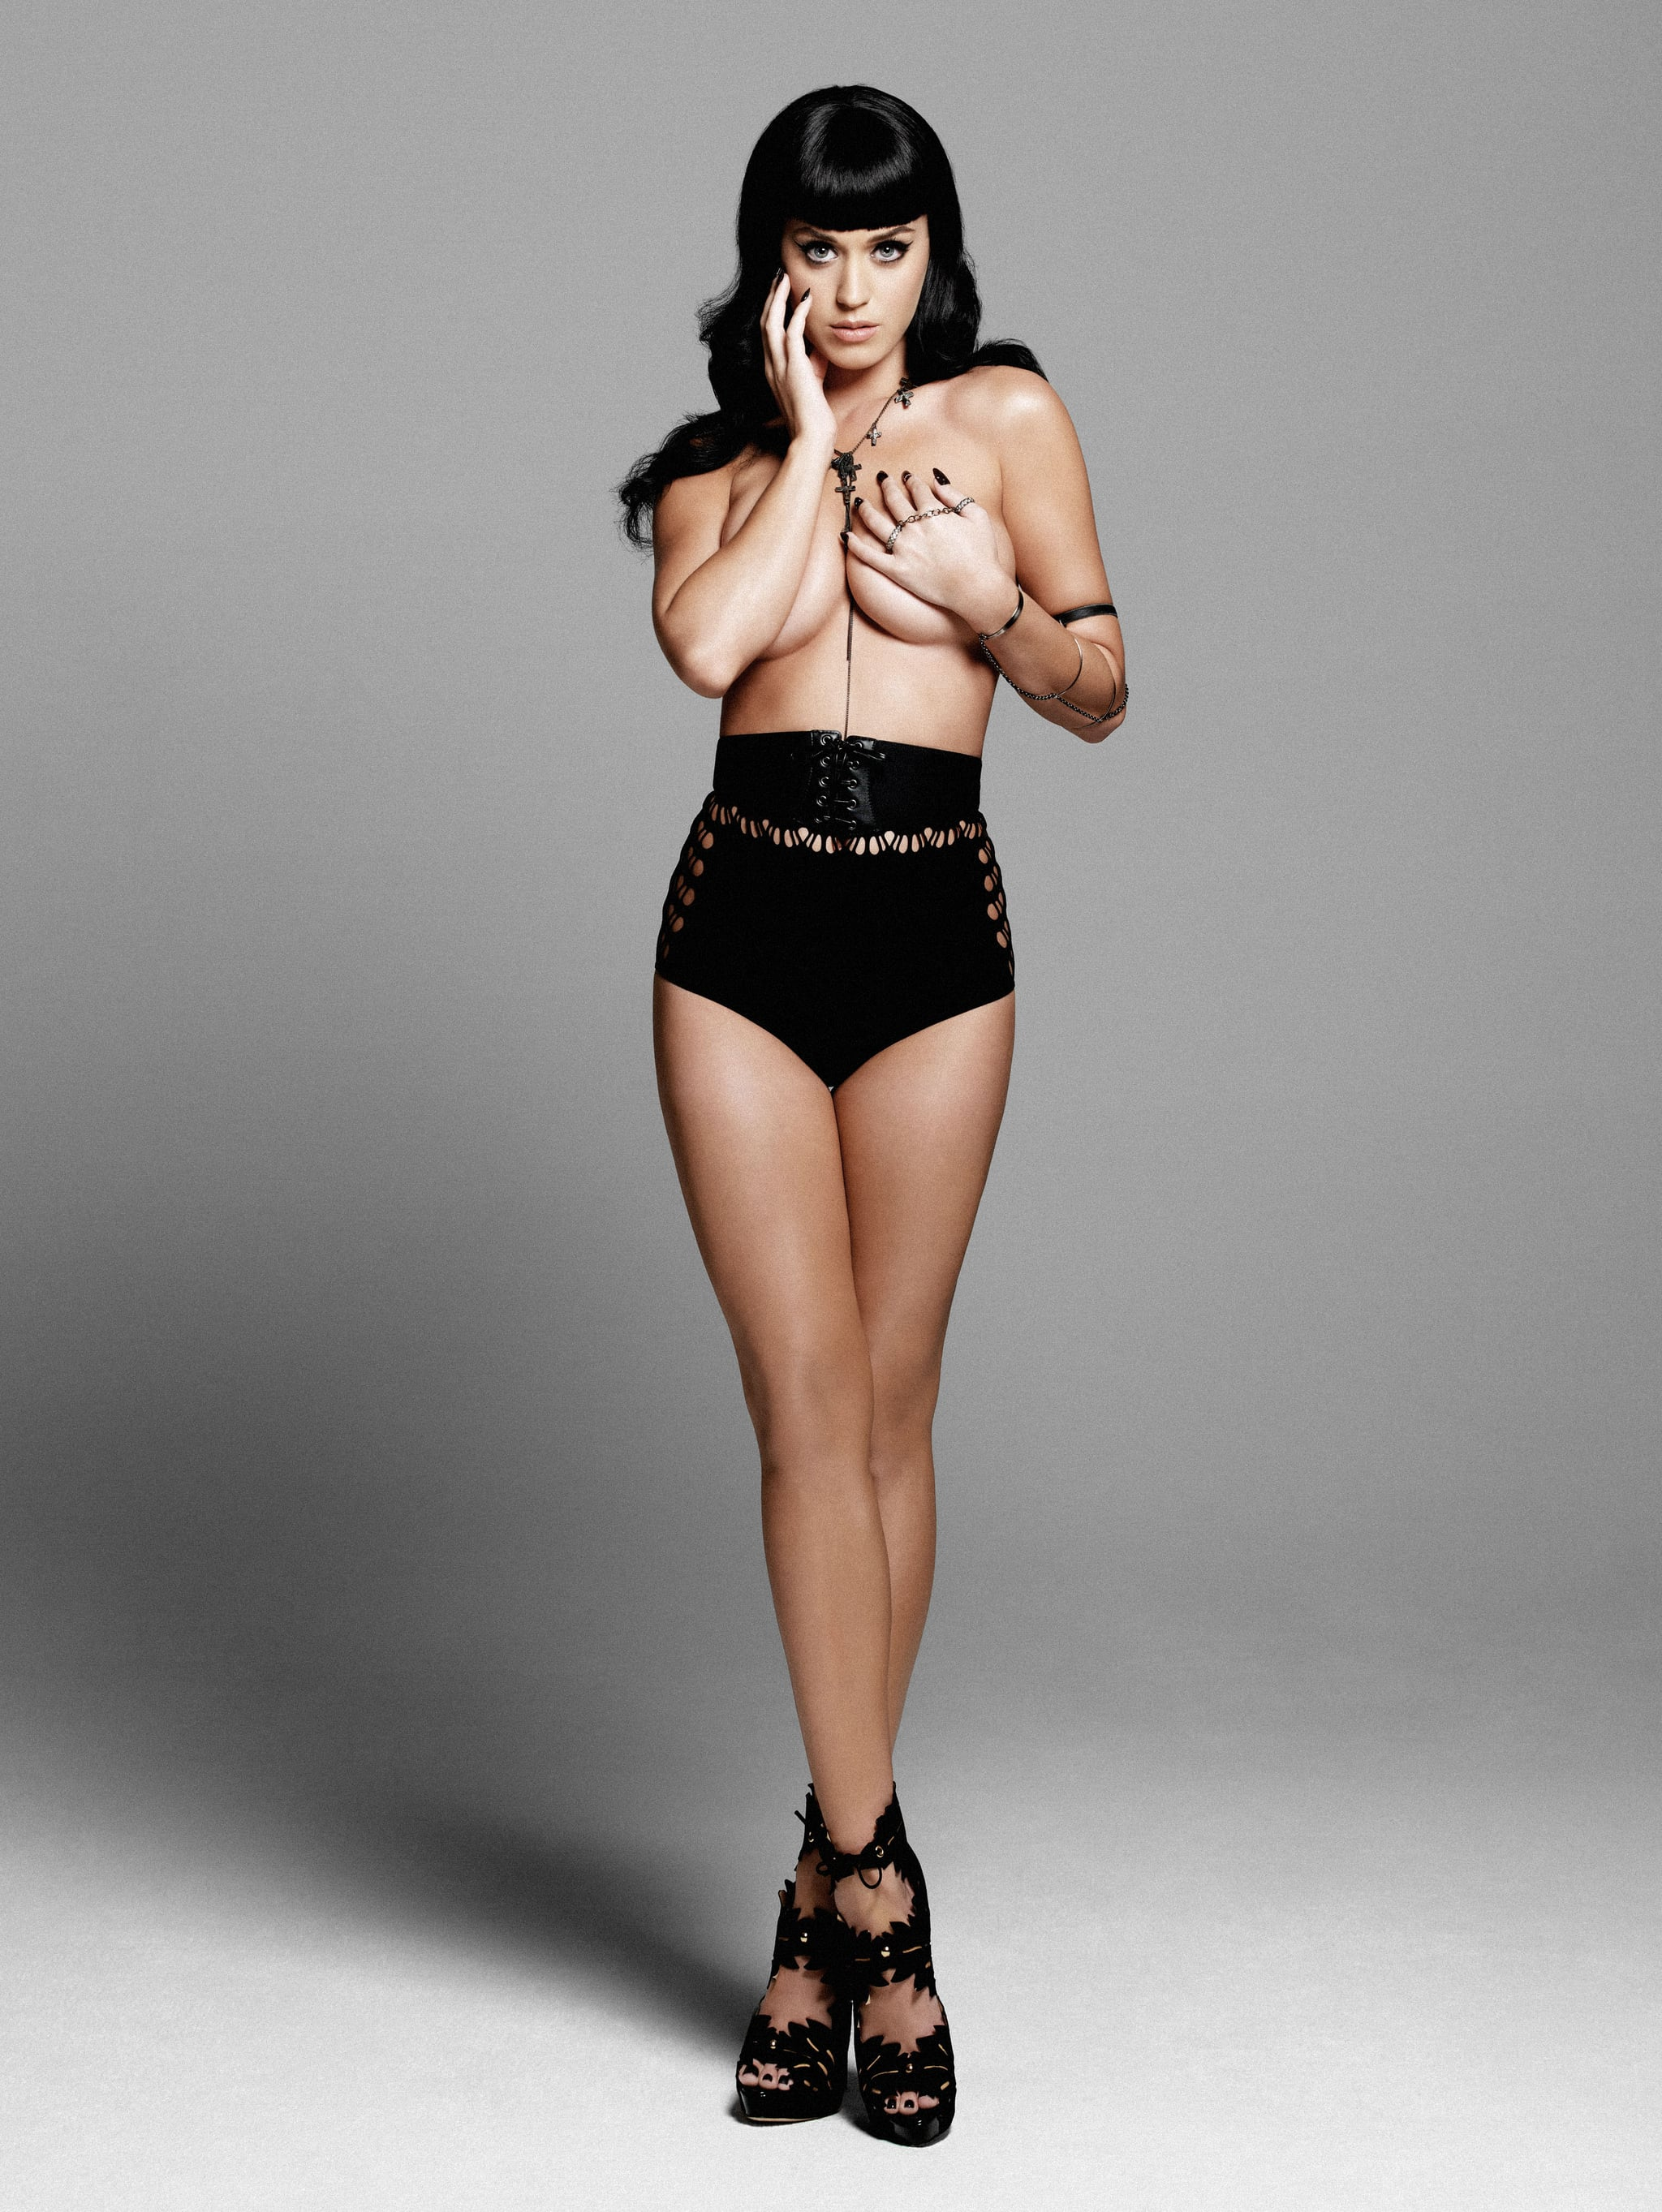 Katy perry photshoop naked images 709